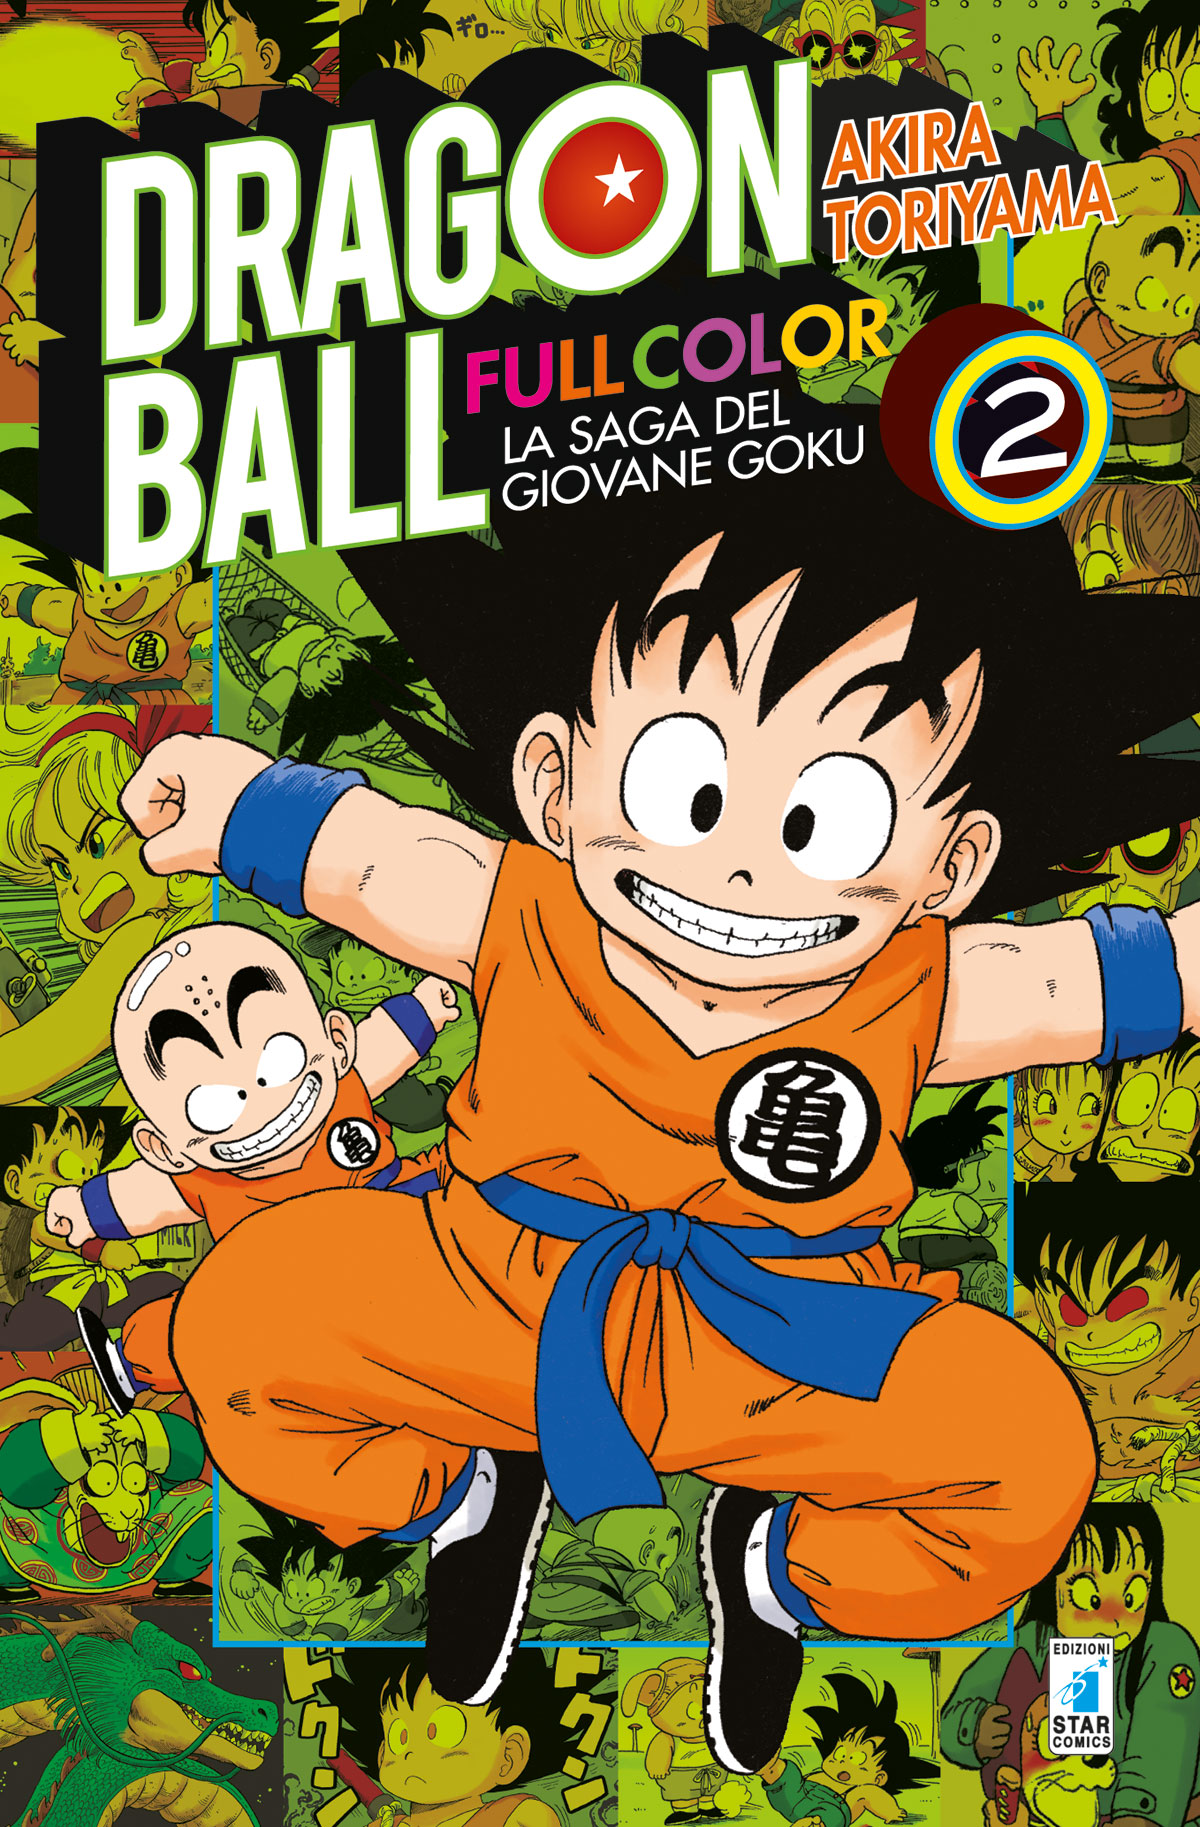 Dragon Ball Full Color n.2 (DI 8) – La saga del giovane Goku